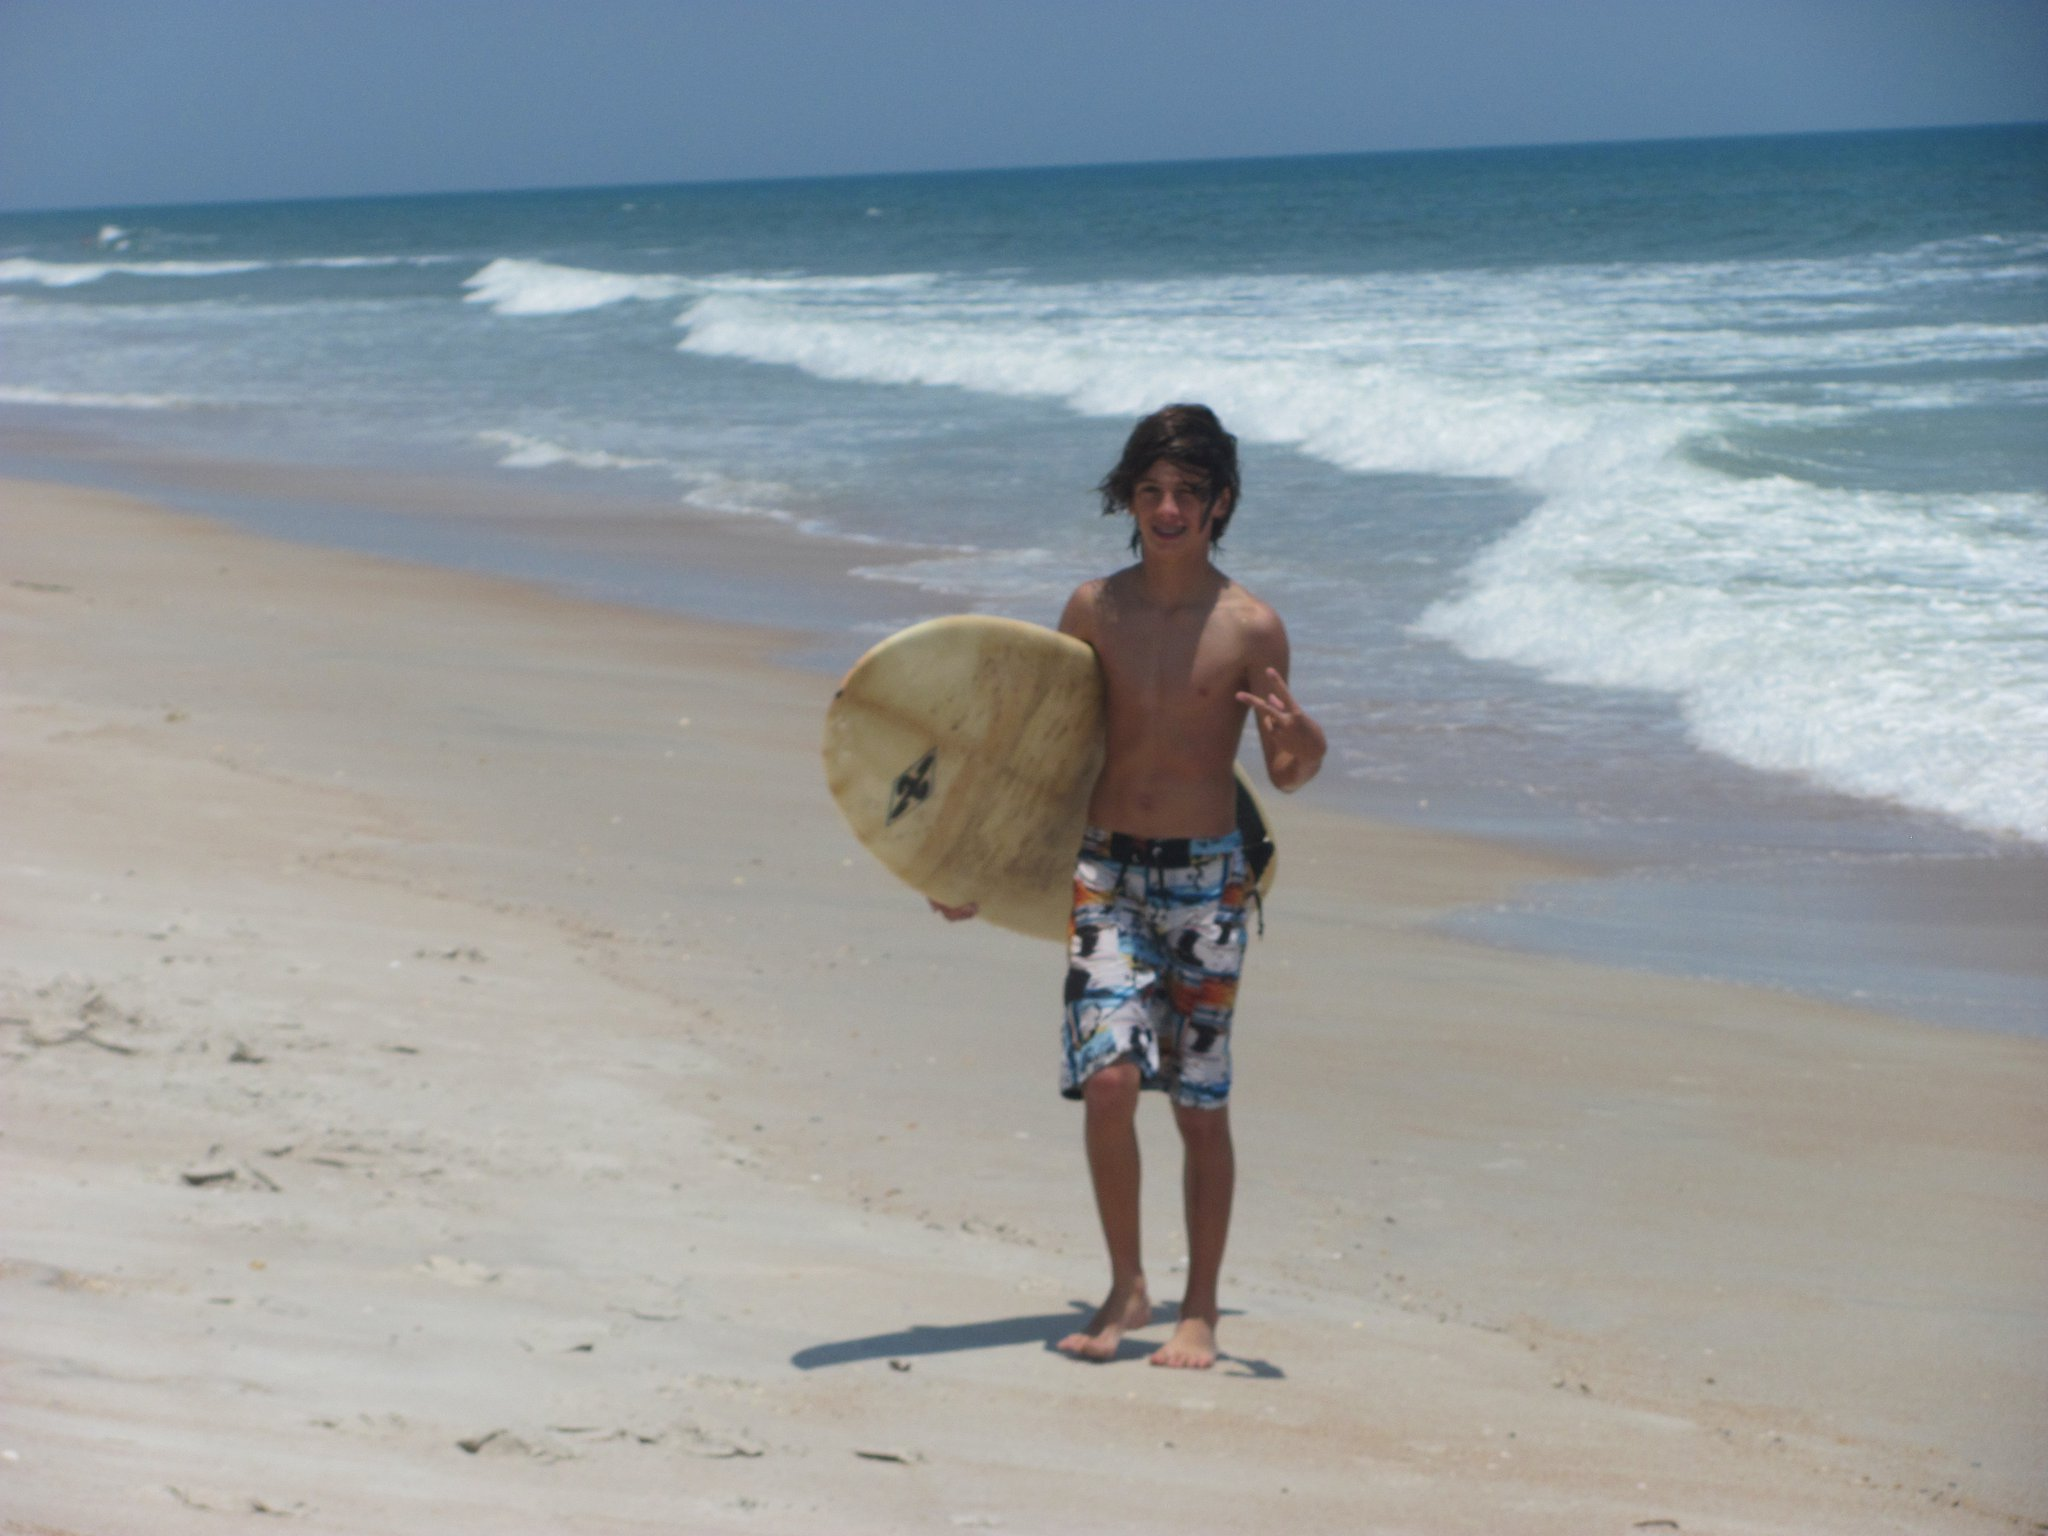 boy walking on beach with surfboard